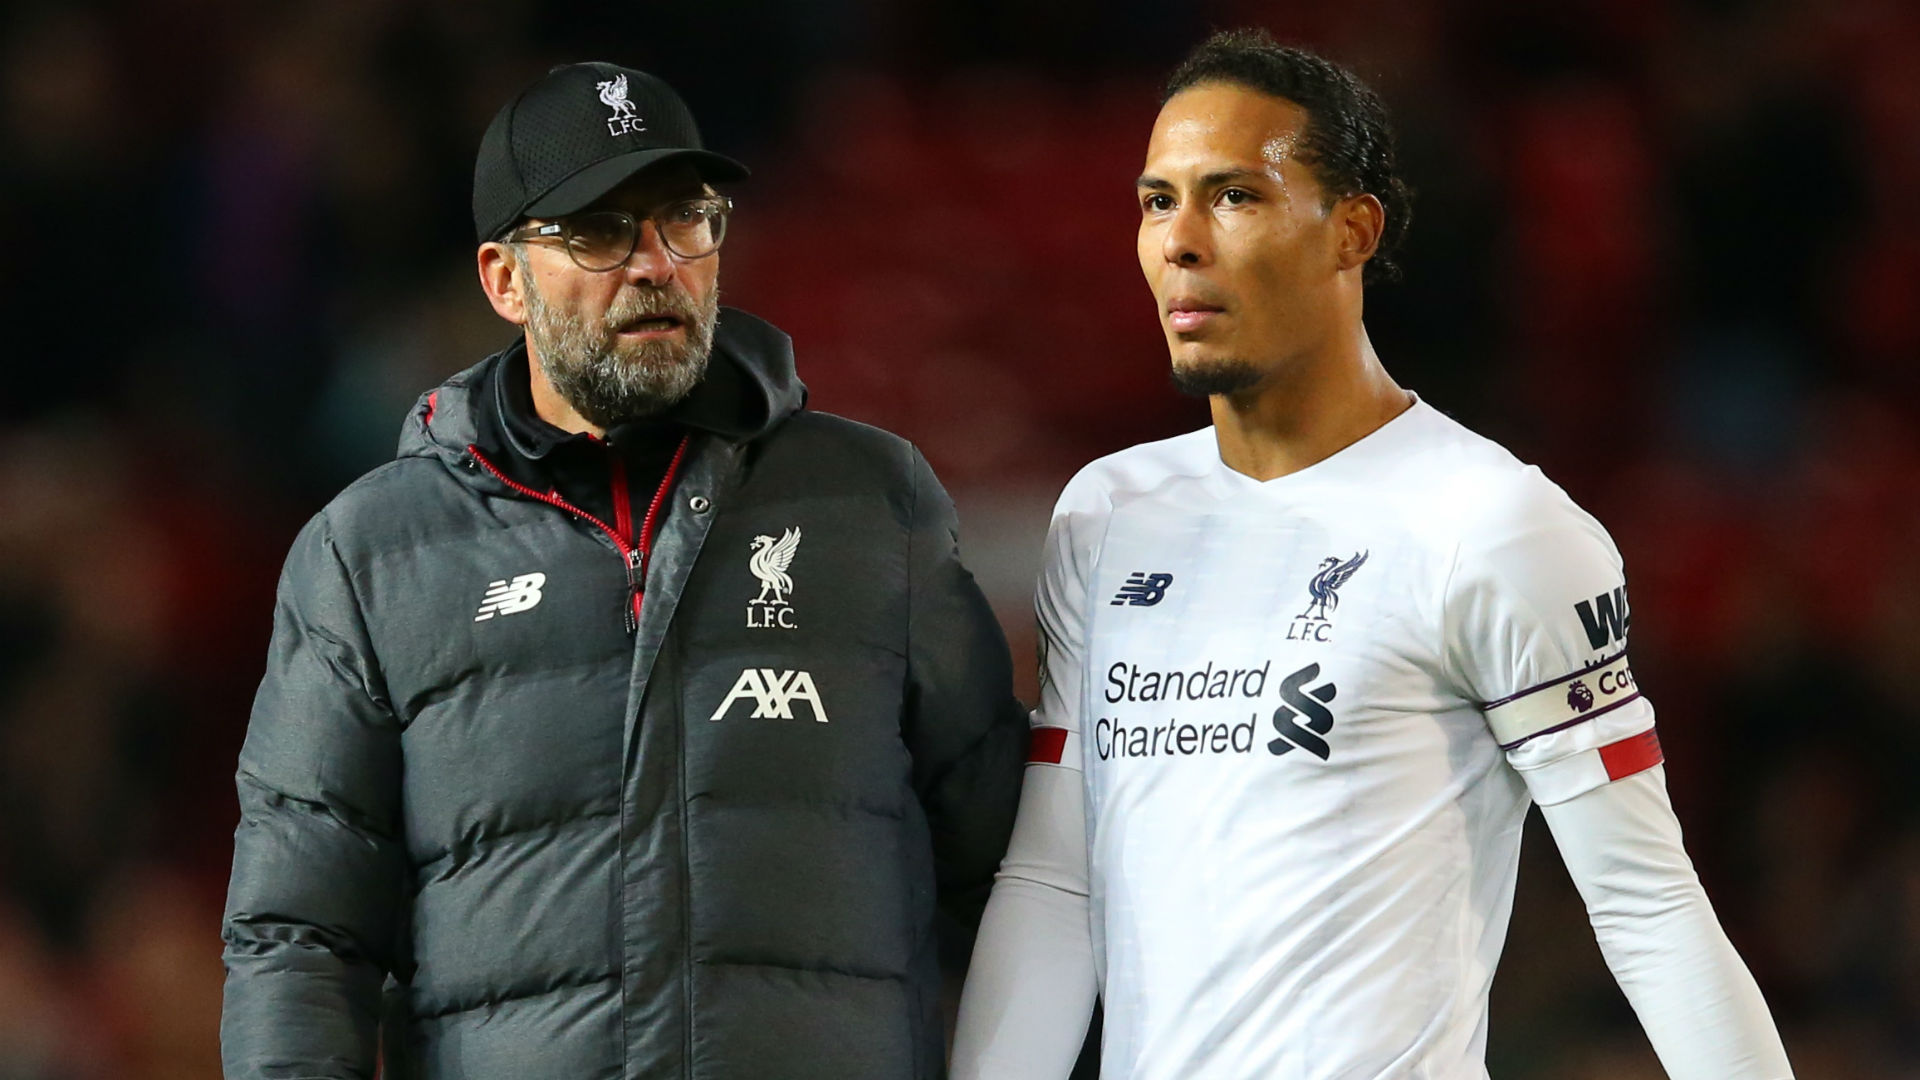 'Klopp has something special' - Manager is reason I chose Liverpool over Chelsea and Man City, says Van Dijk